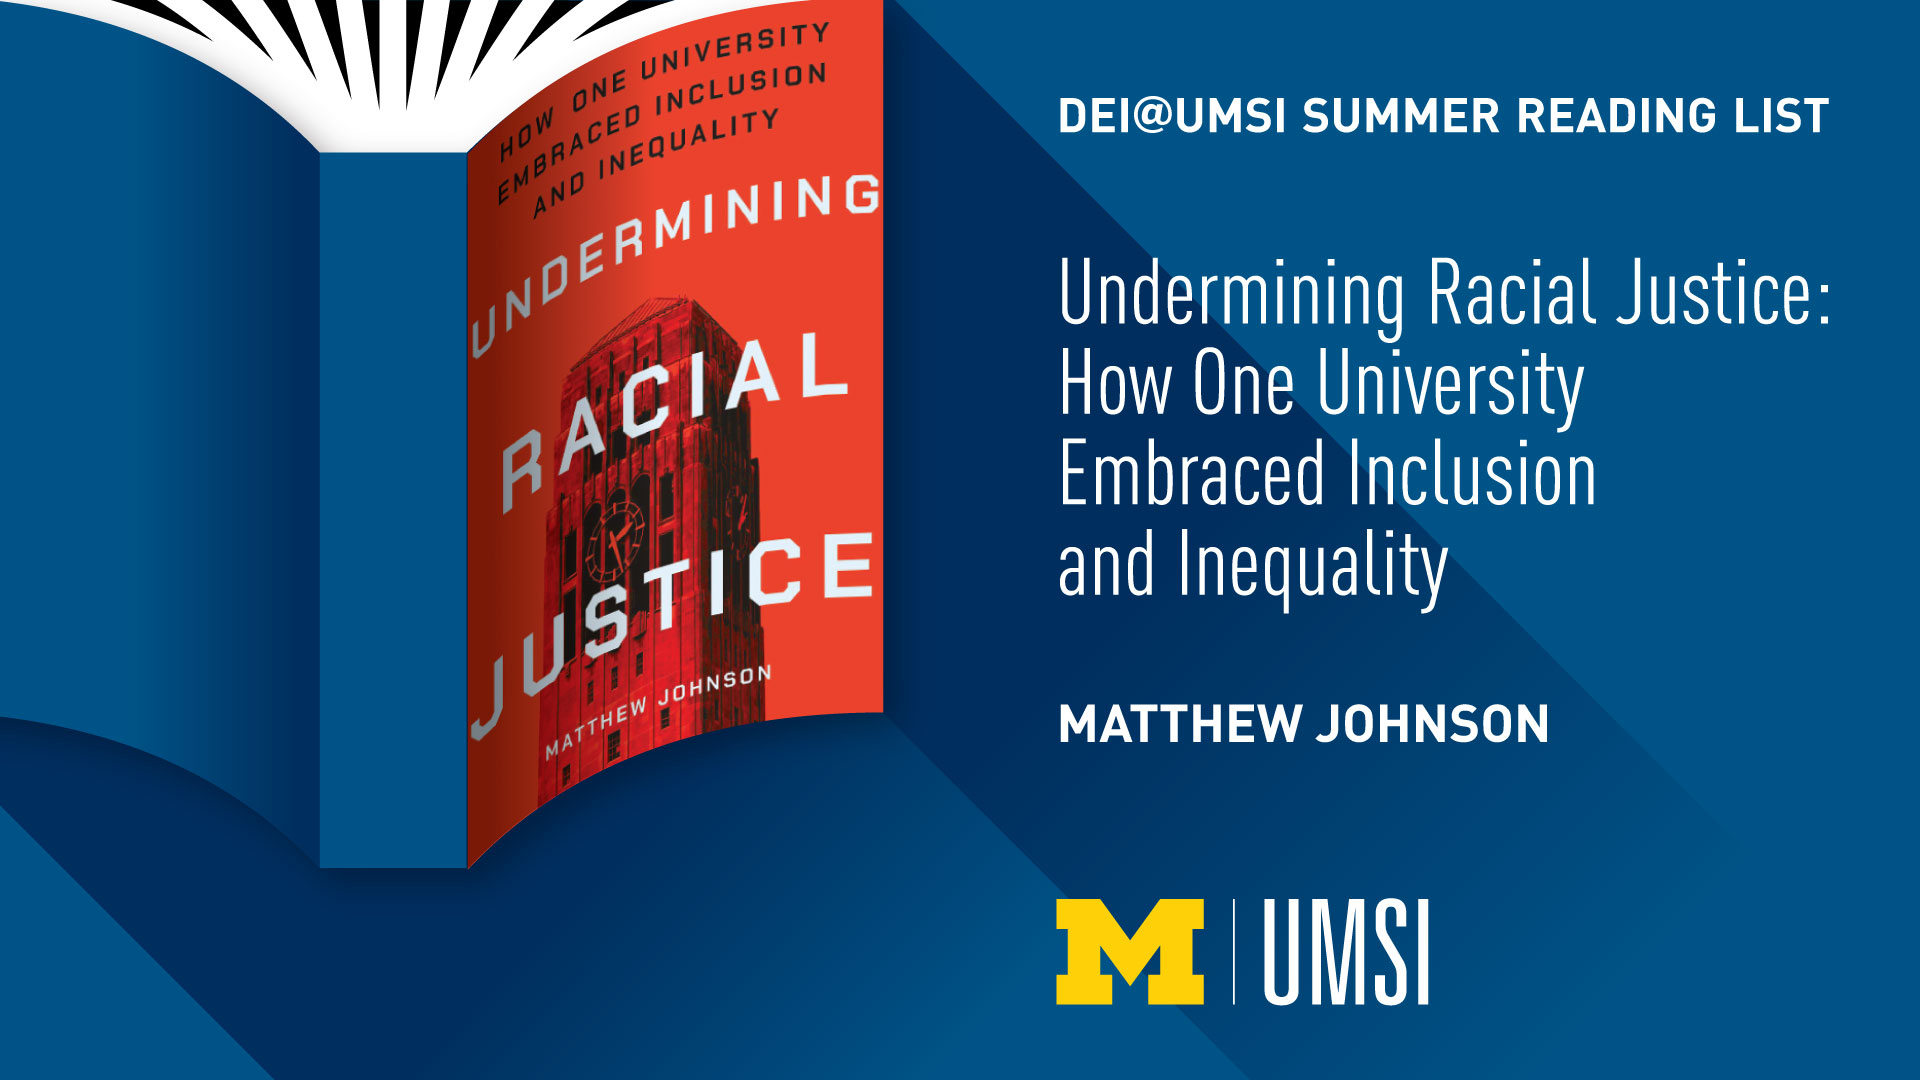 DEI@UMSI Summer Reading List - Undermining Racial Justice: How One University Embraced Inclusion and Inequality by Matthew Johnson